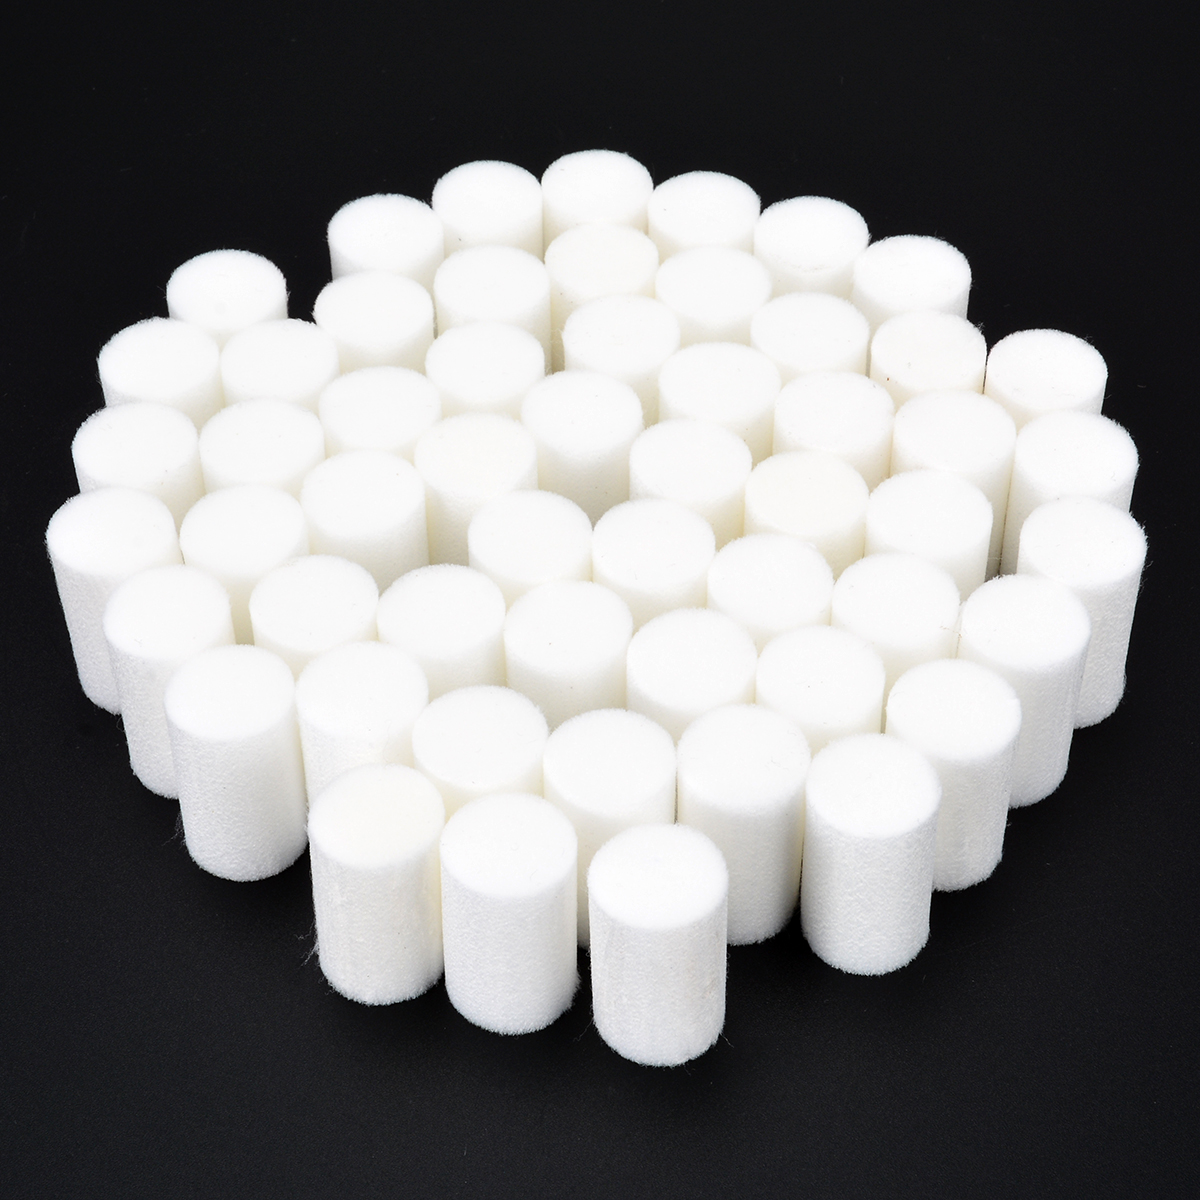 50pcs High Pressure Pump Filter Element Refill 35*20mm White Fiber Cotton Filters For Air Compressor System Mayitr p 015 corrugated pneumatics coalescing element filter core for air compressor